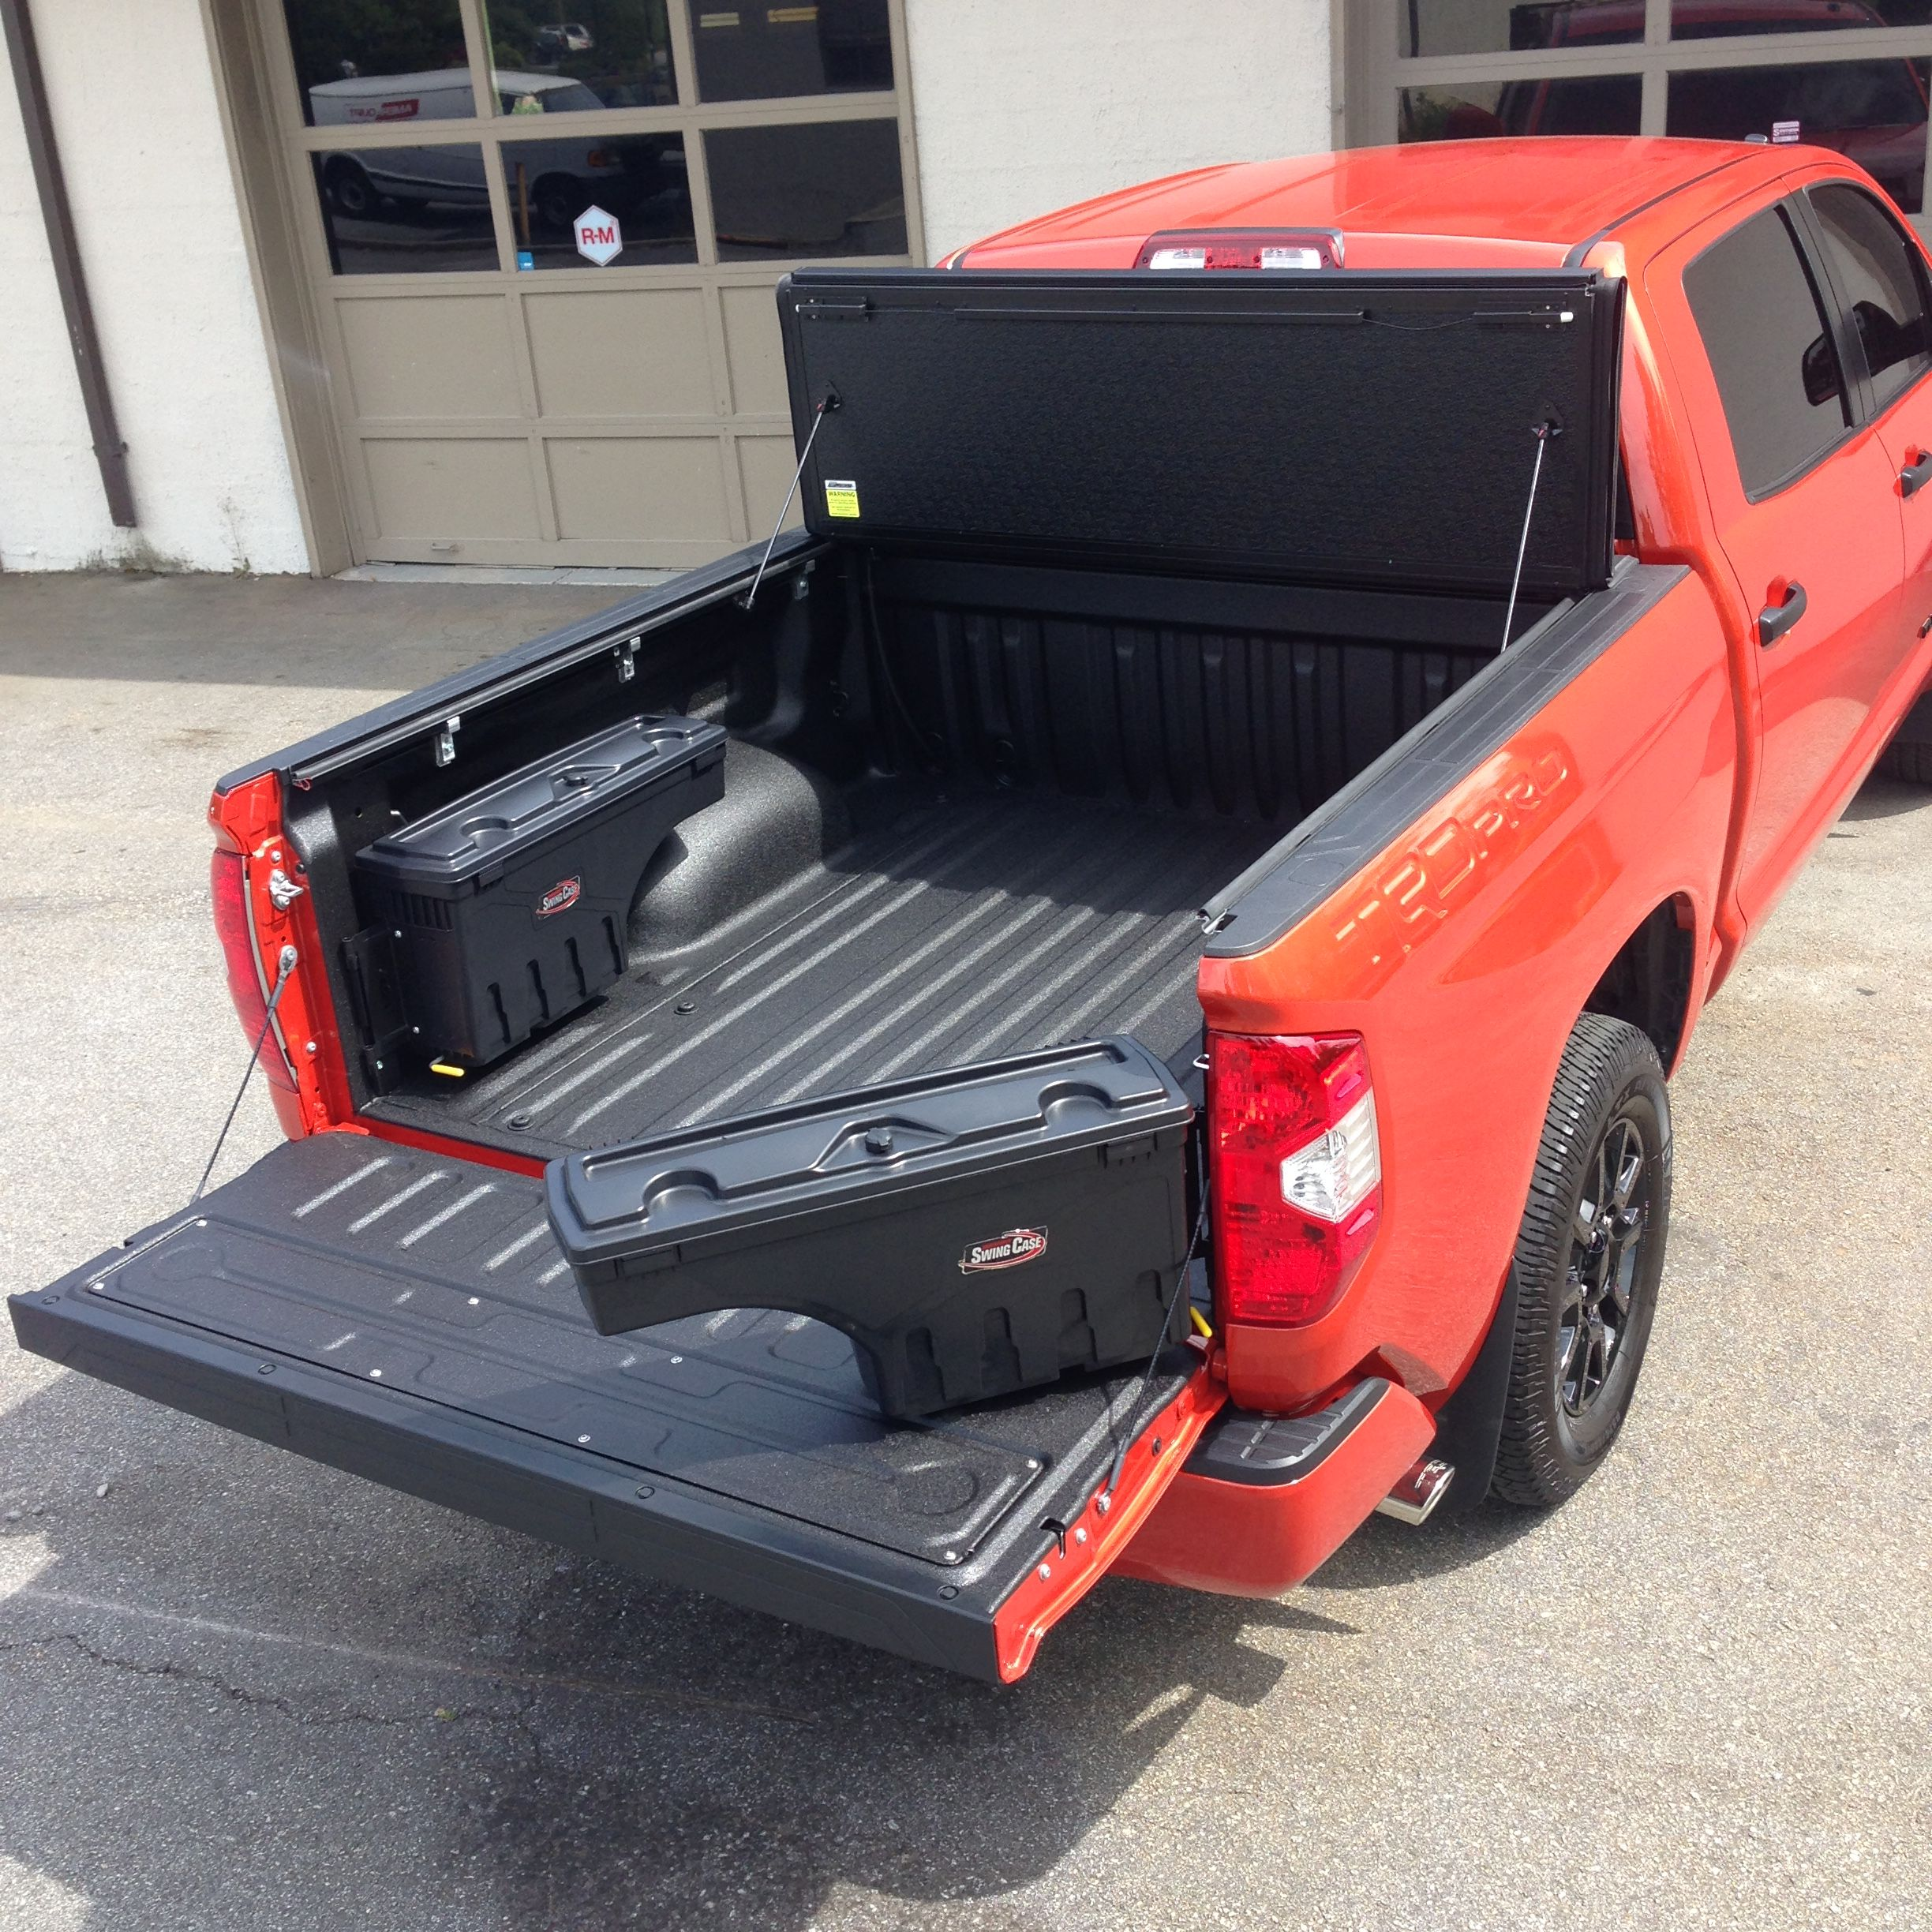 sb in mats toyota tacoma truck models bed for reviews best pcr helpful accessories com select amazon mat customer rated